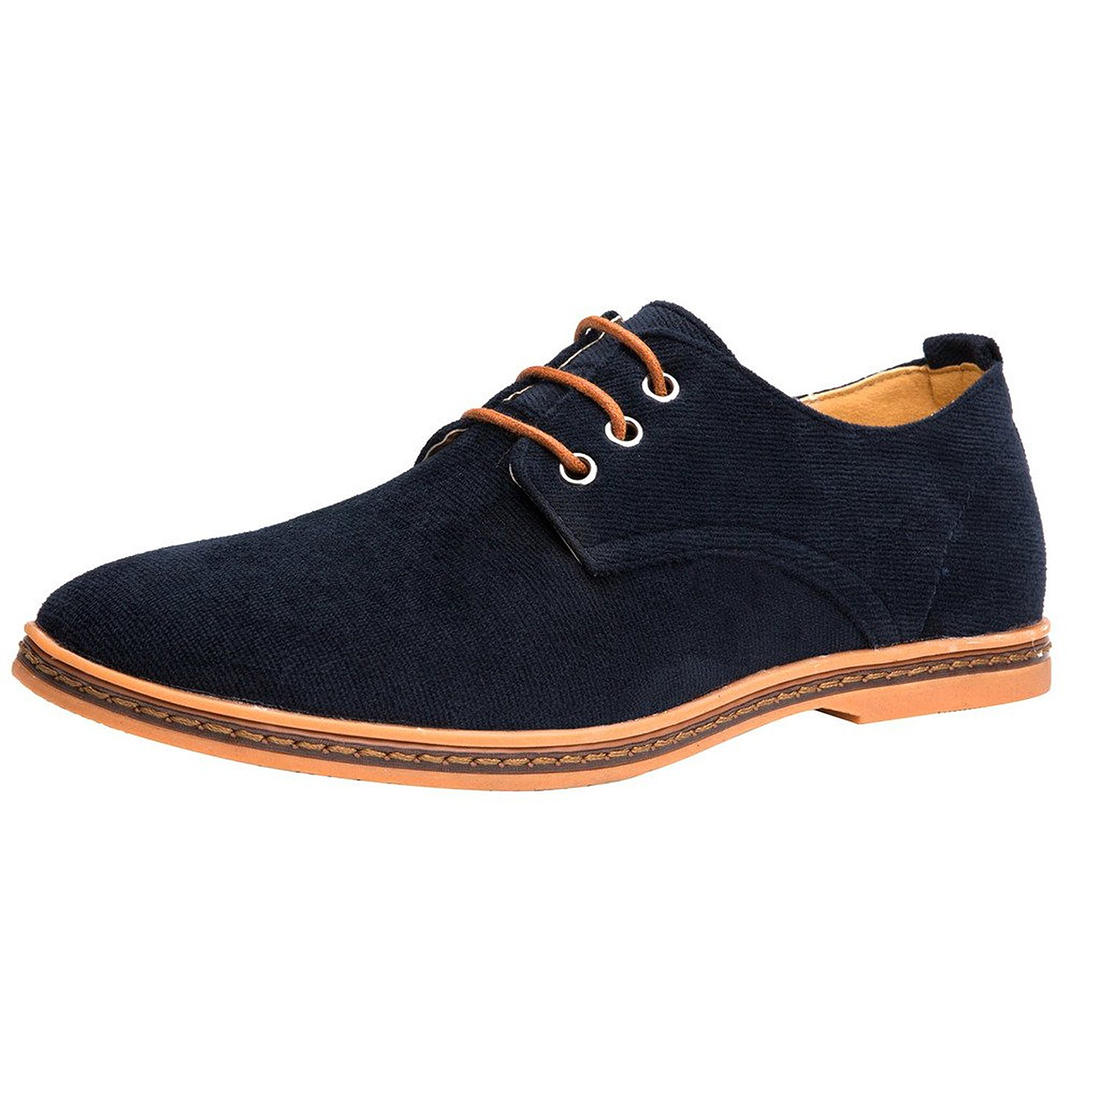 Velvet shoes--city Shoes for boy Dark blue Velvet Ribbed Man oxfords casual fall shoes with laces pocket side ribbed velvet overalls